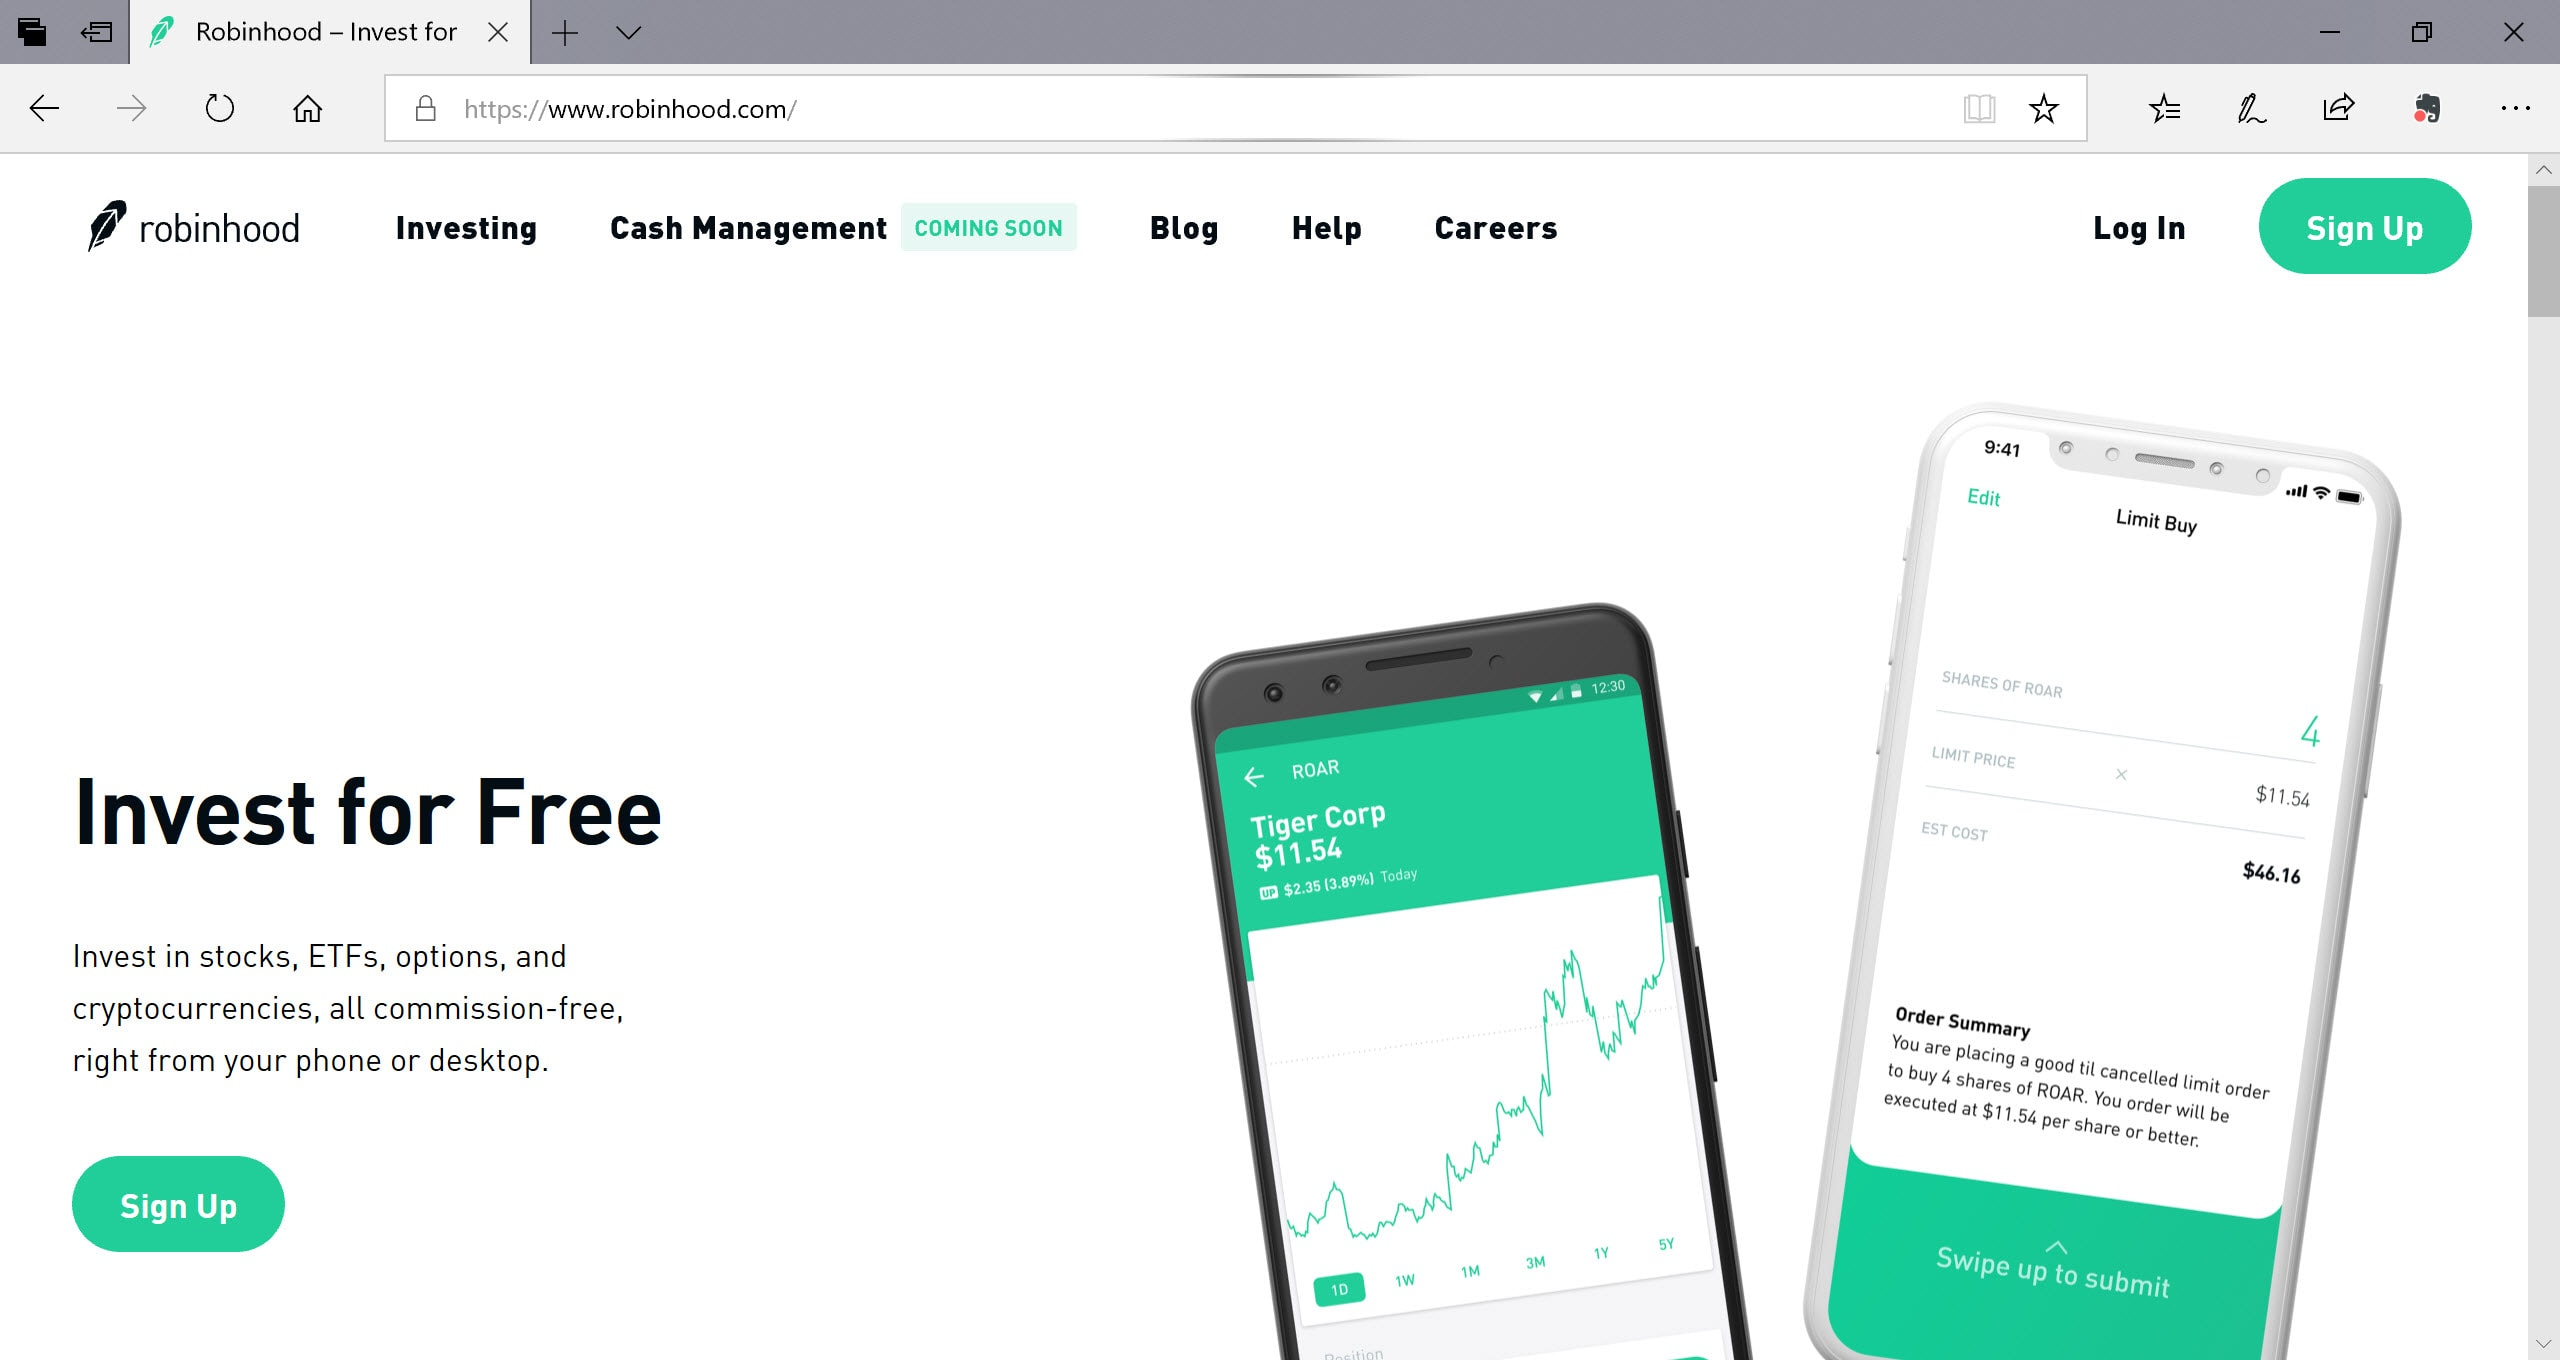 Voucher Code Printables 20 Off Robinhood July 2020